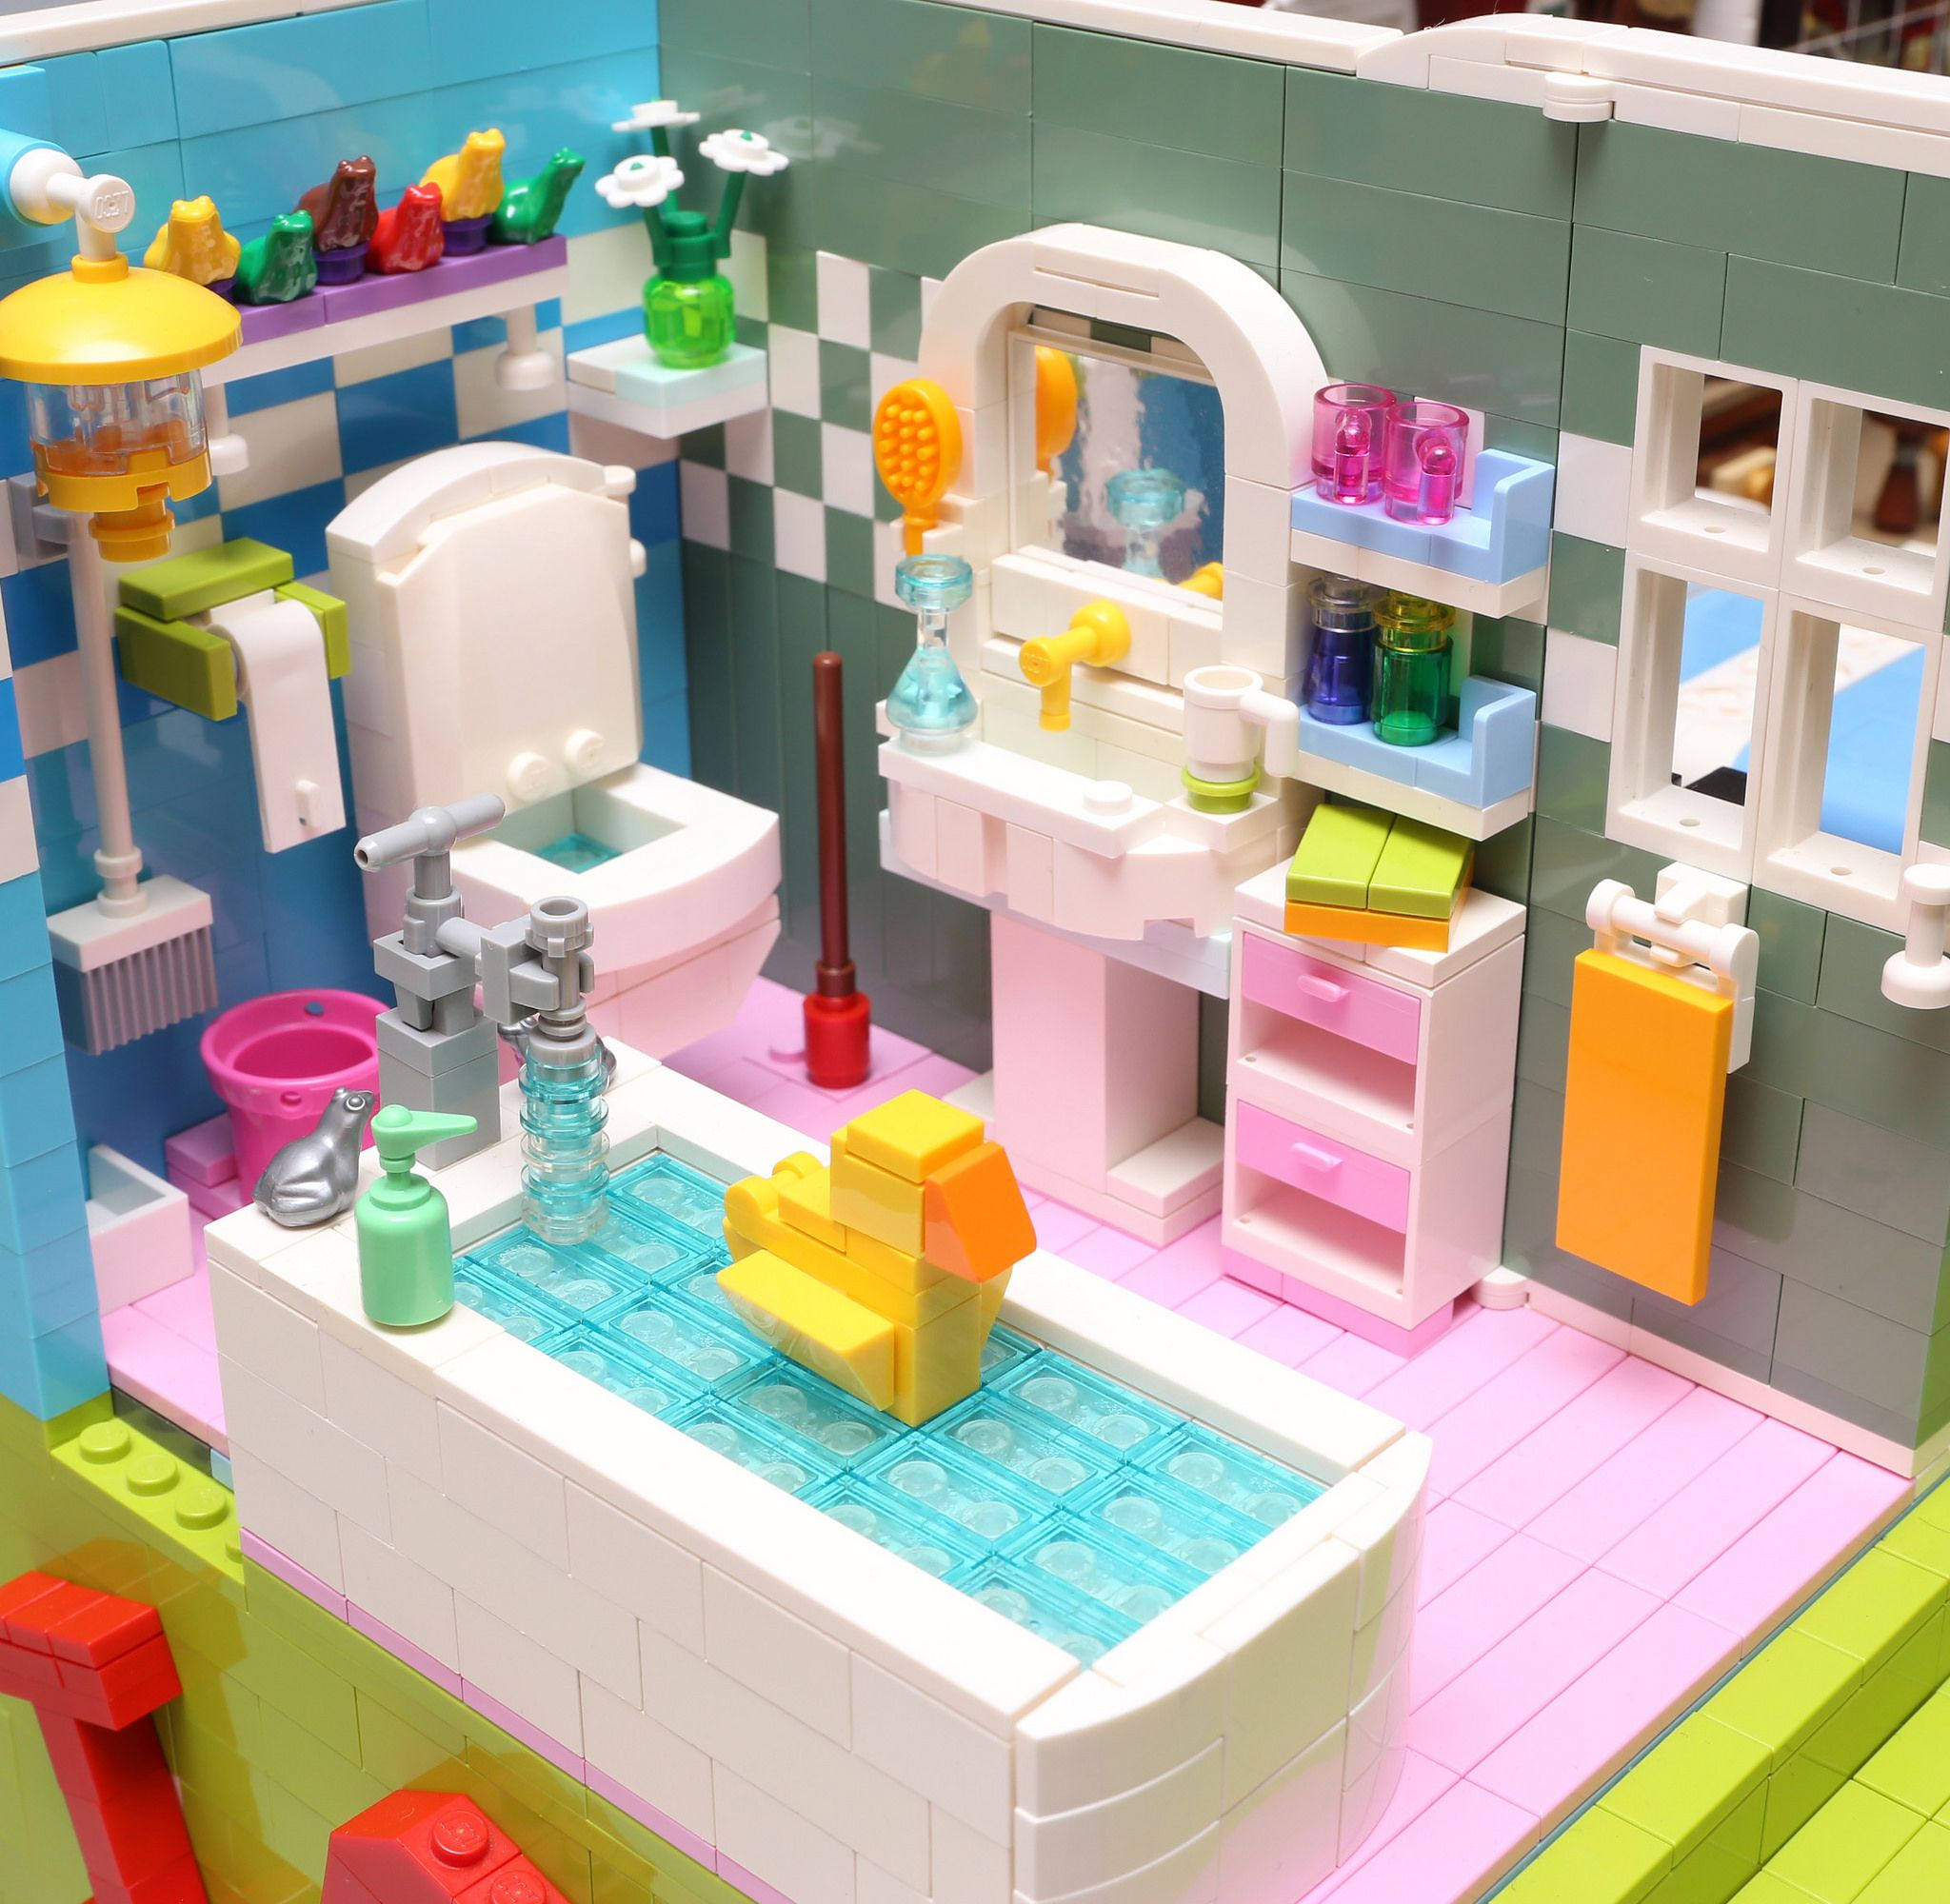 Lego Friends Badezimmer Lego Dream House Bathroom Lego Interiors Lego Bathroom